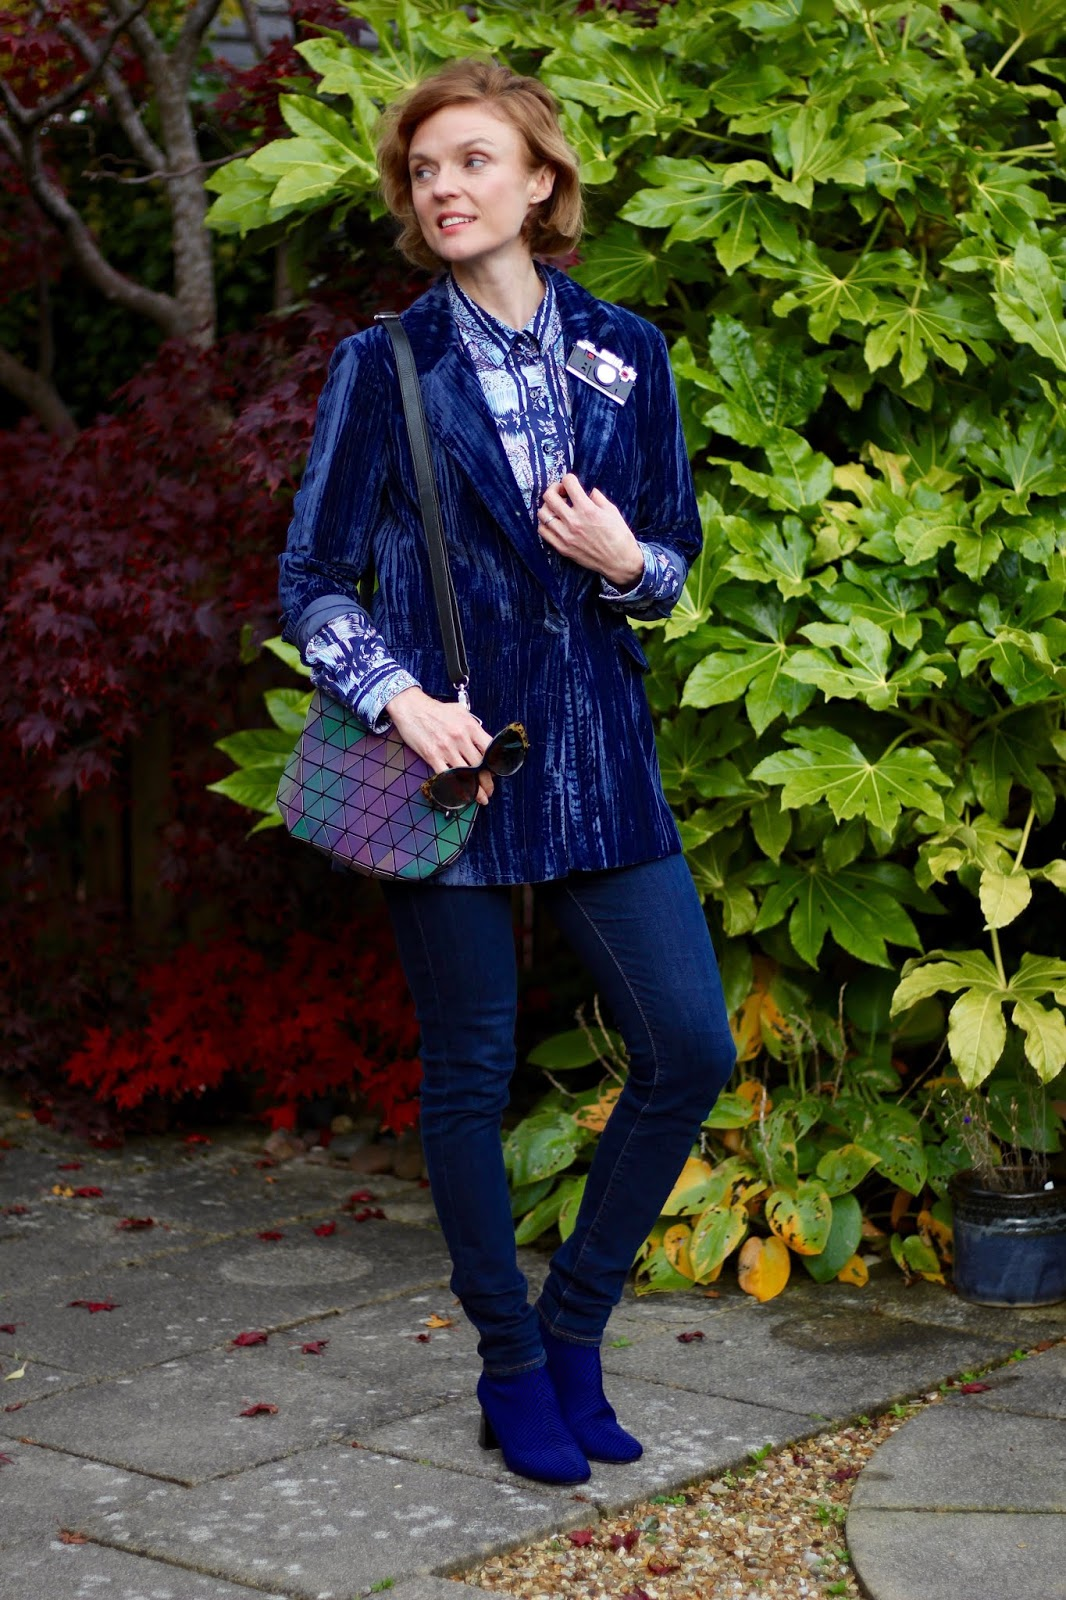 Blue Velvet Blazer as Daywear | Autumn Outfit | Fake Fabulous